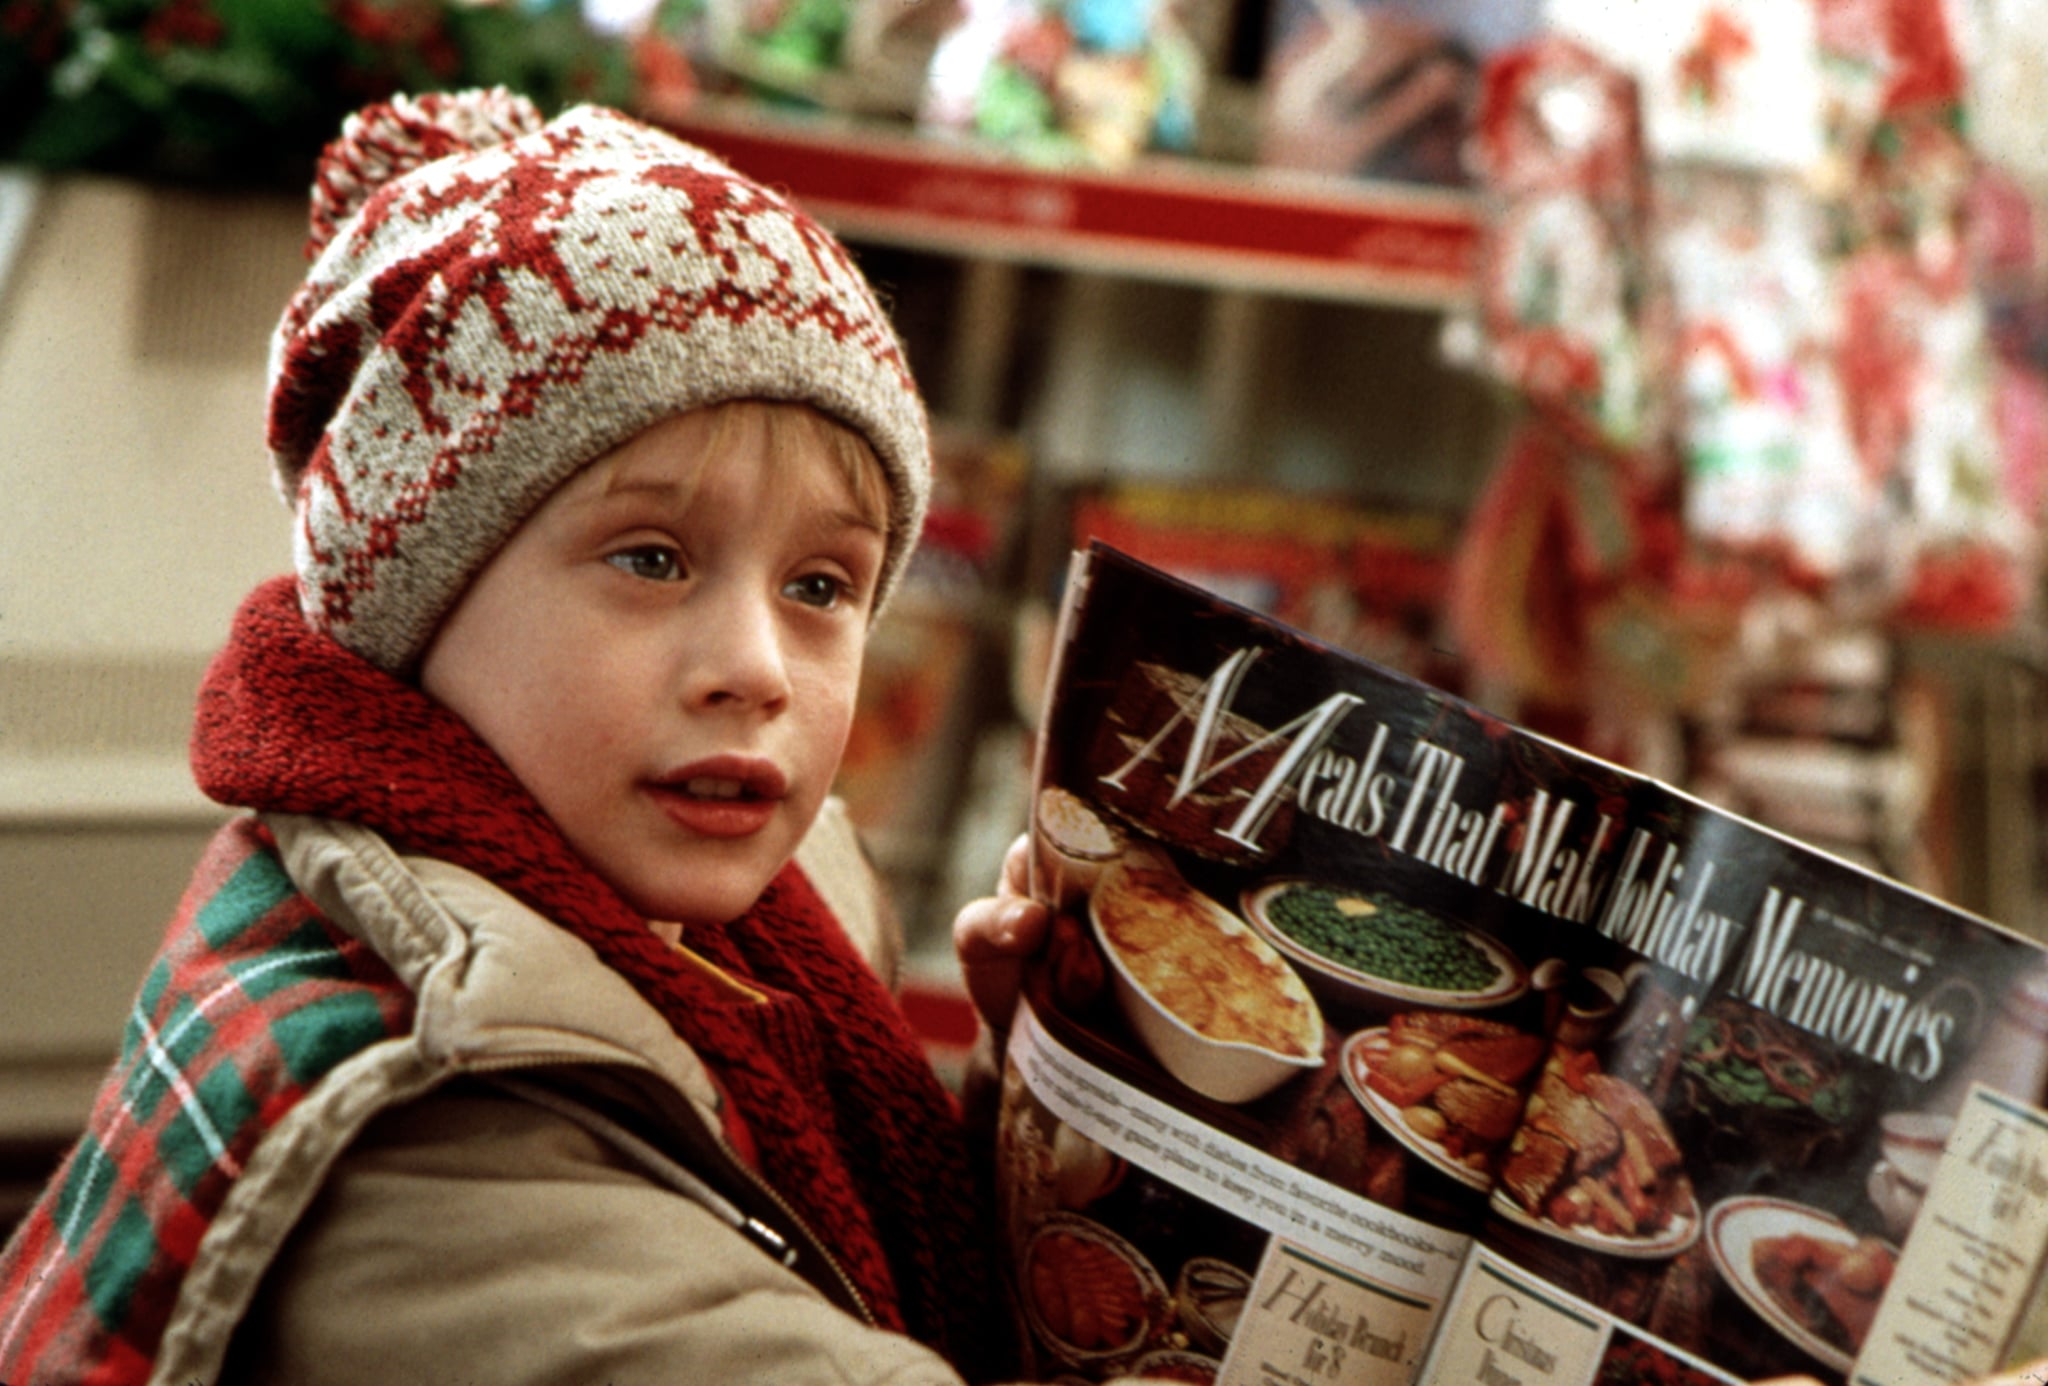 HOME ALONE, Macaulay Culkin, 1990. TM & Copyright (c) 20th Century Fox Film Corp. All rights reserved, Courtesy: Everett Collection.